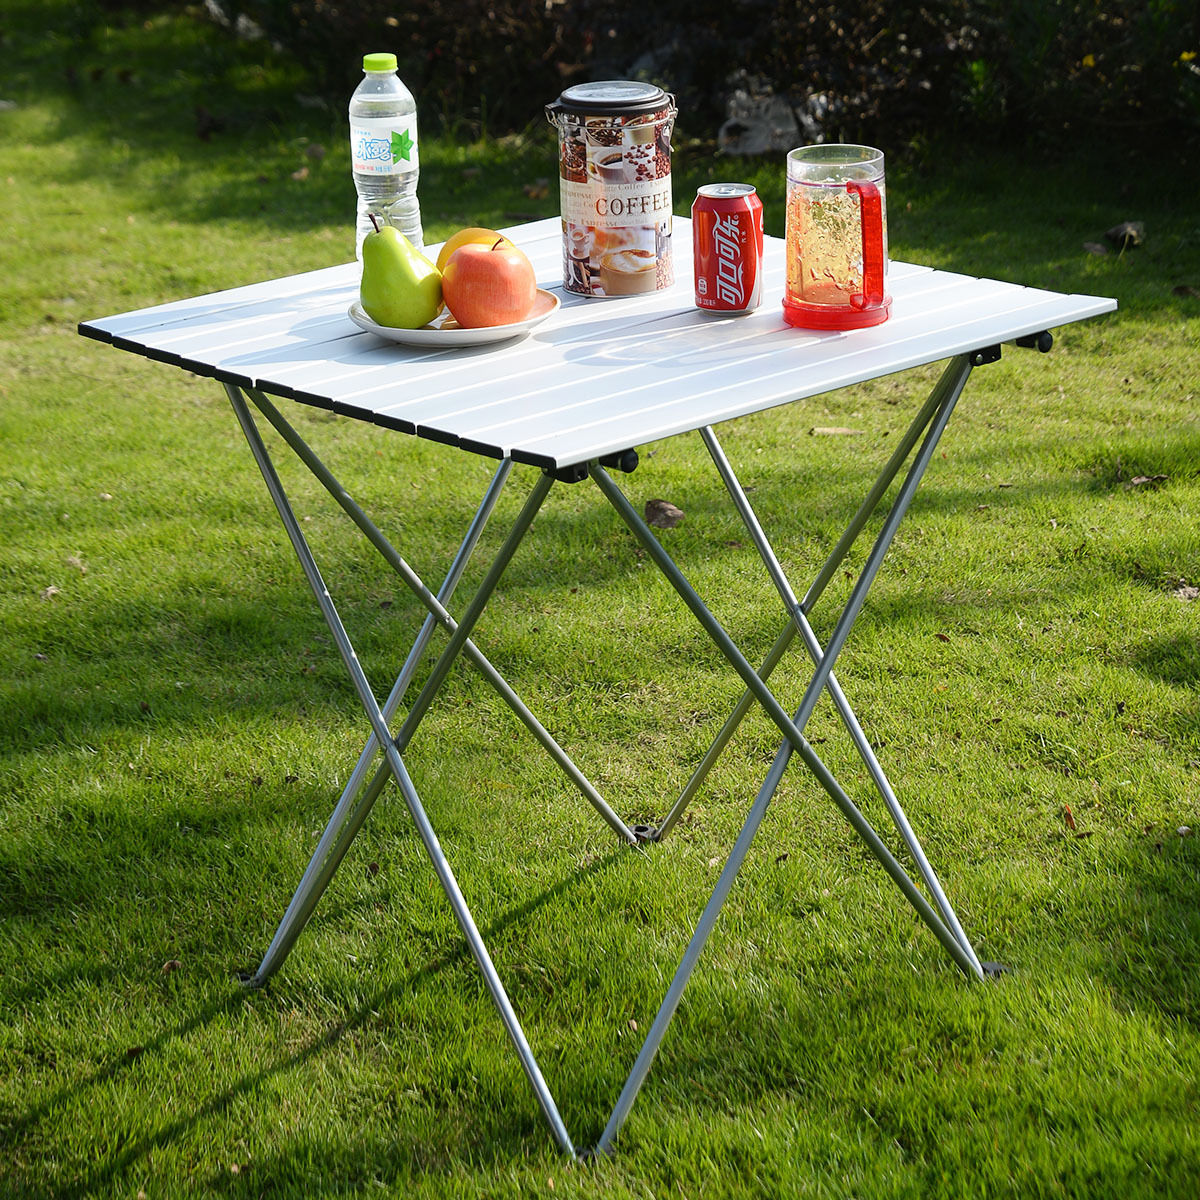 Charmant Outdoor Aluminum Roll Up Folding Camping Table   Outdoor Tables   Outdoor  Furniture   Furniture